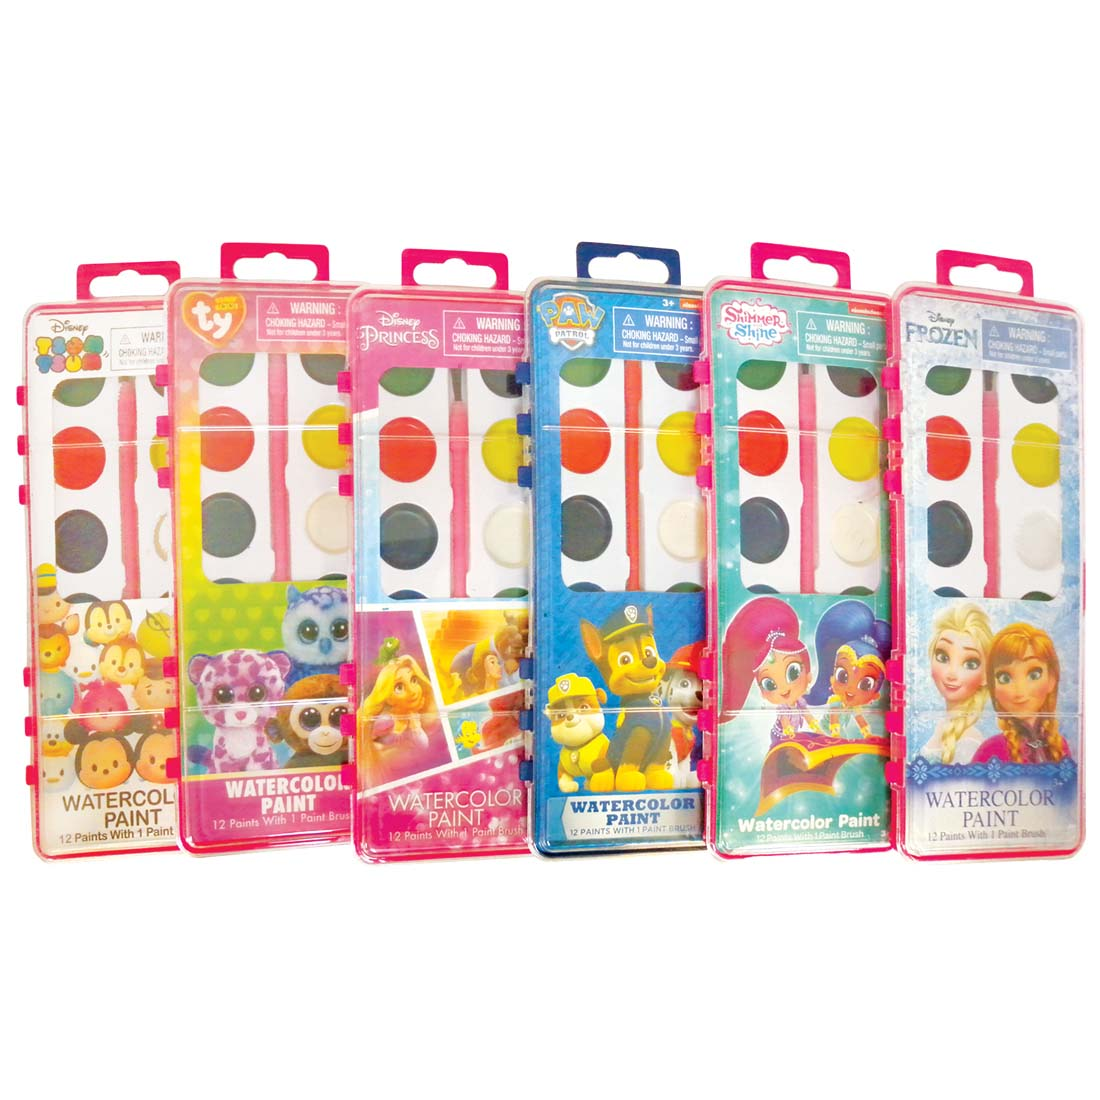 View LICENSED WATERCOLOR PAINT INCLUDES 12 PAINTS/ 1 PAINT BRUSH AGES 3+ ASSORTED DESIGNS